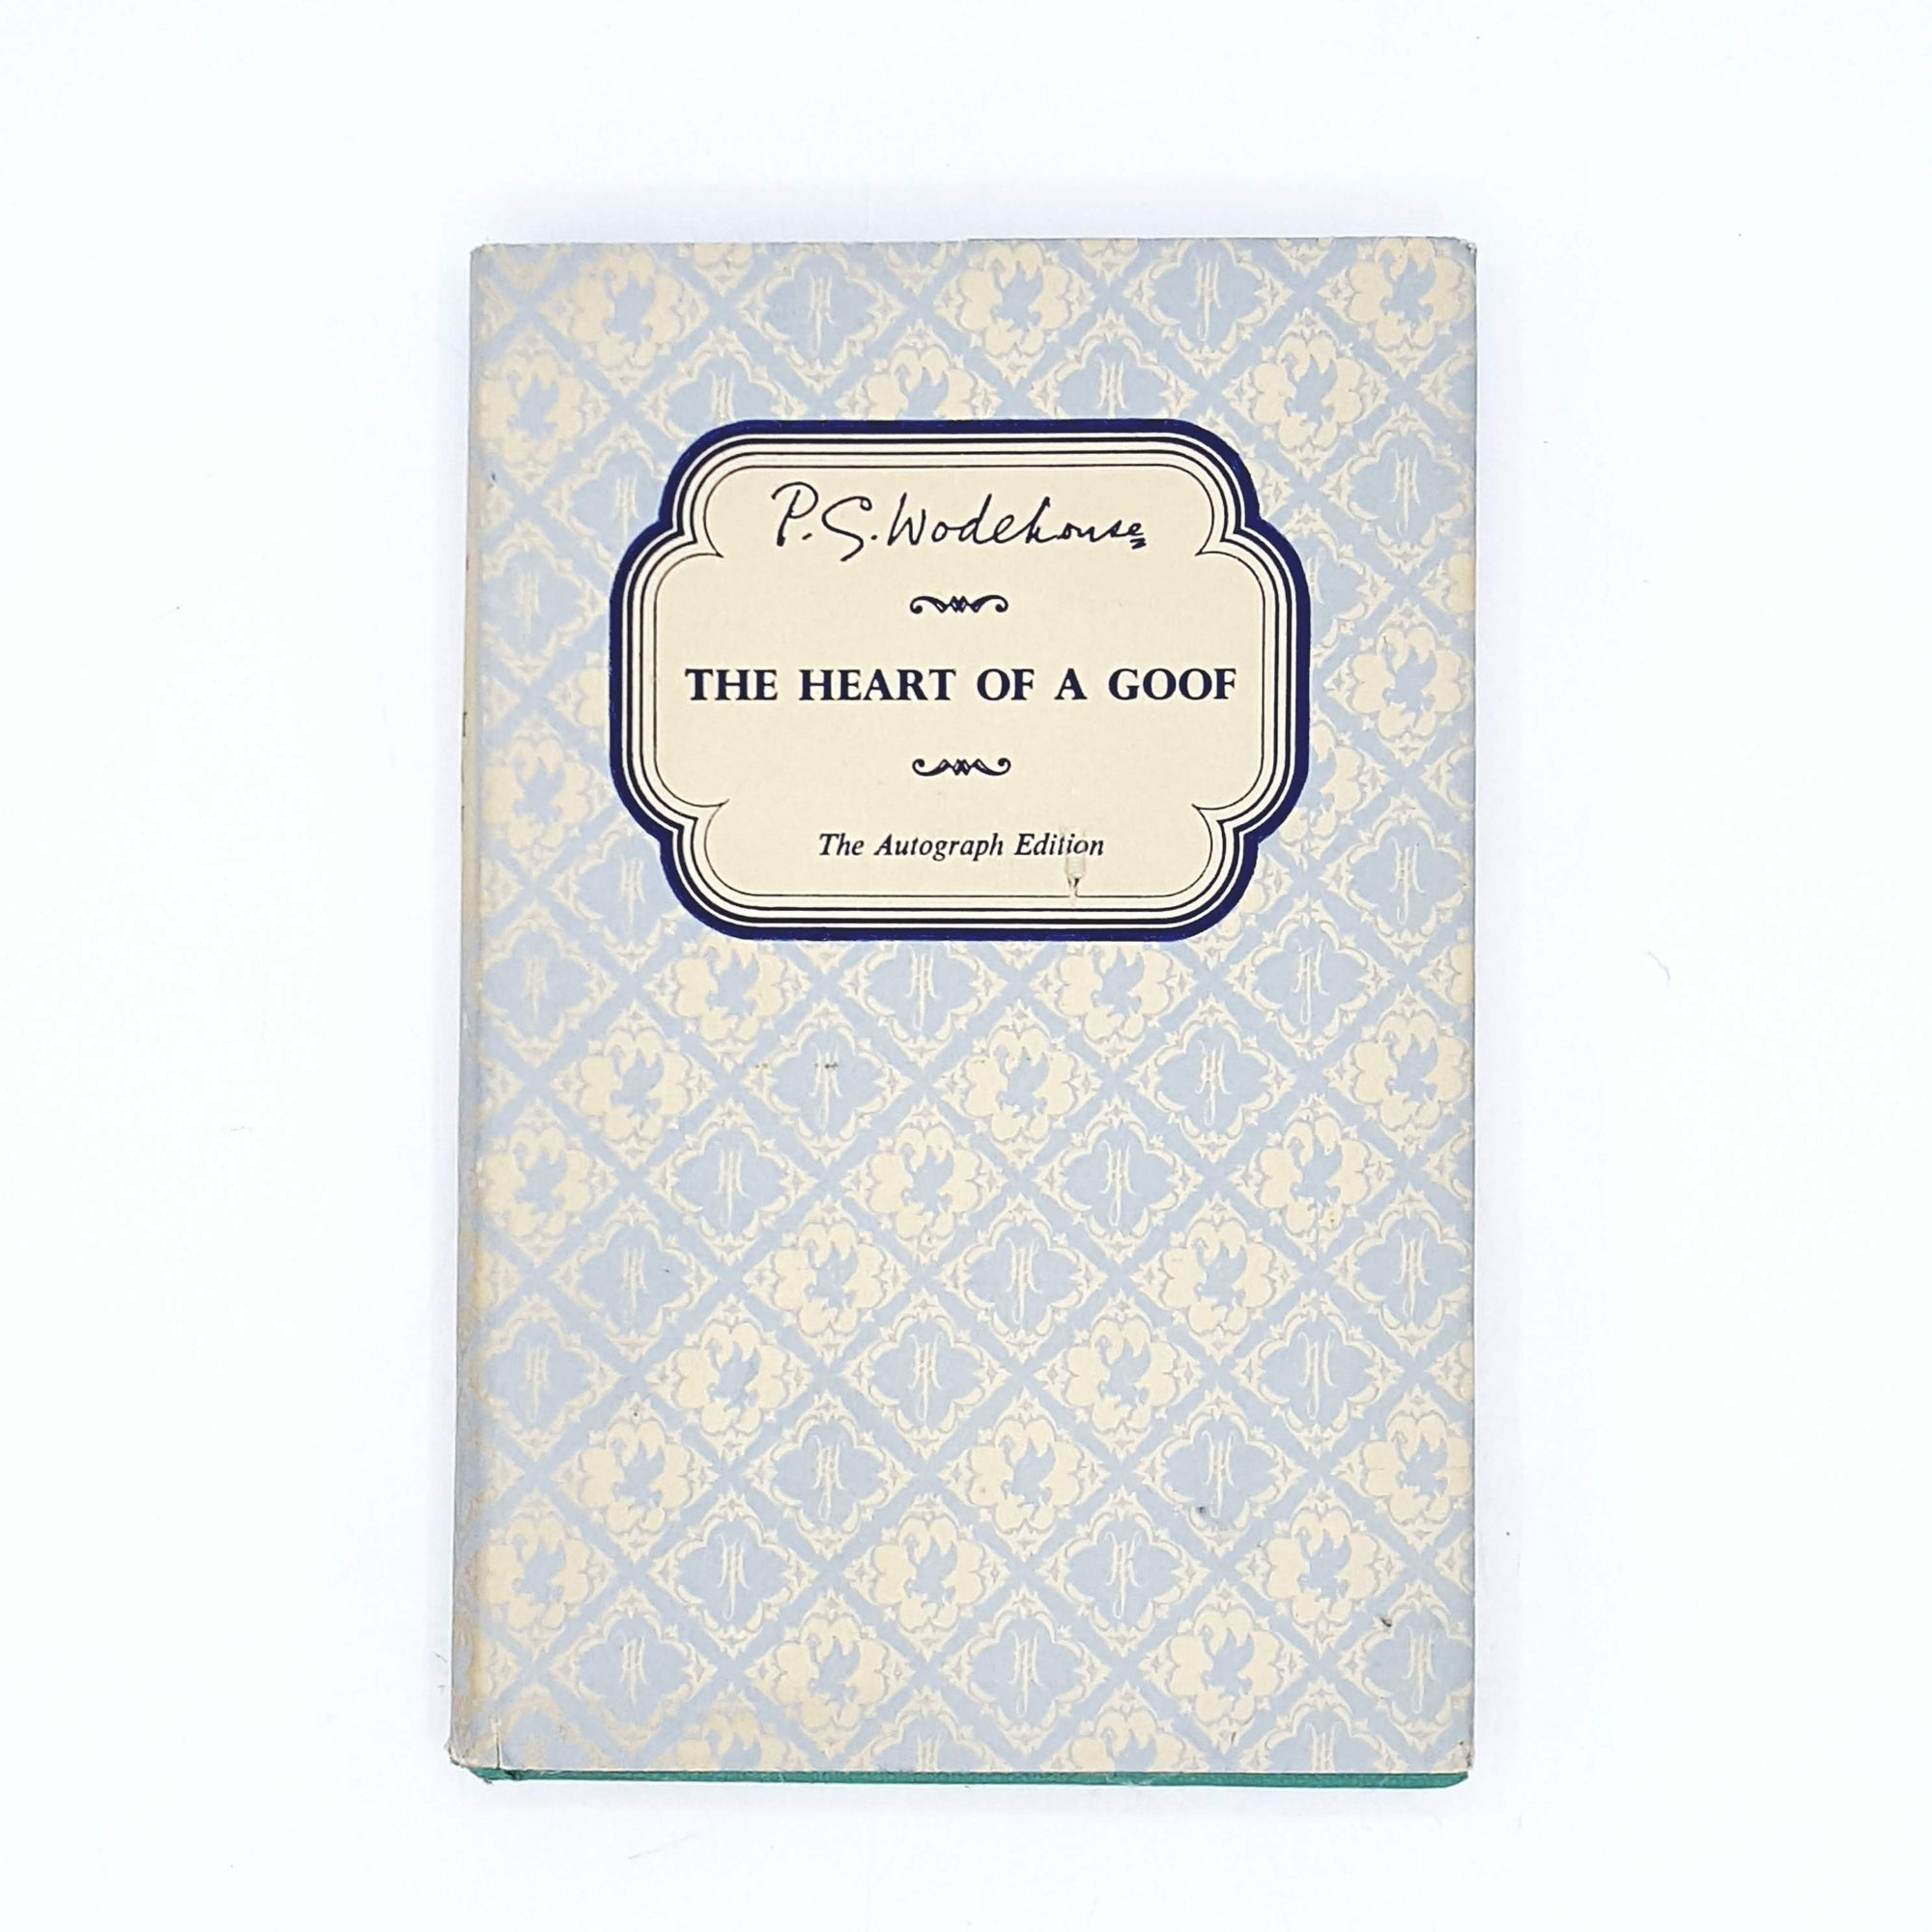 P. G. Wodehouse's The Heart of a Goof 1956